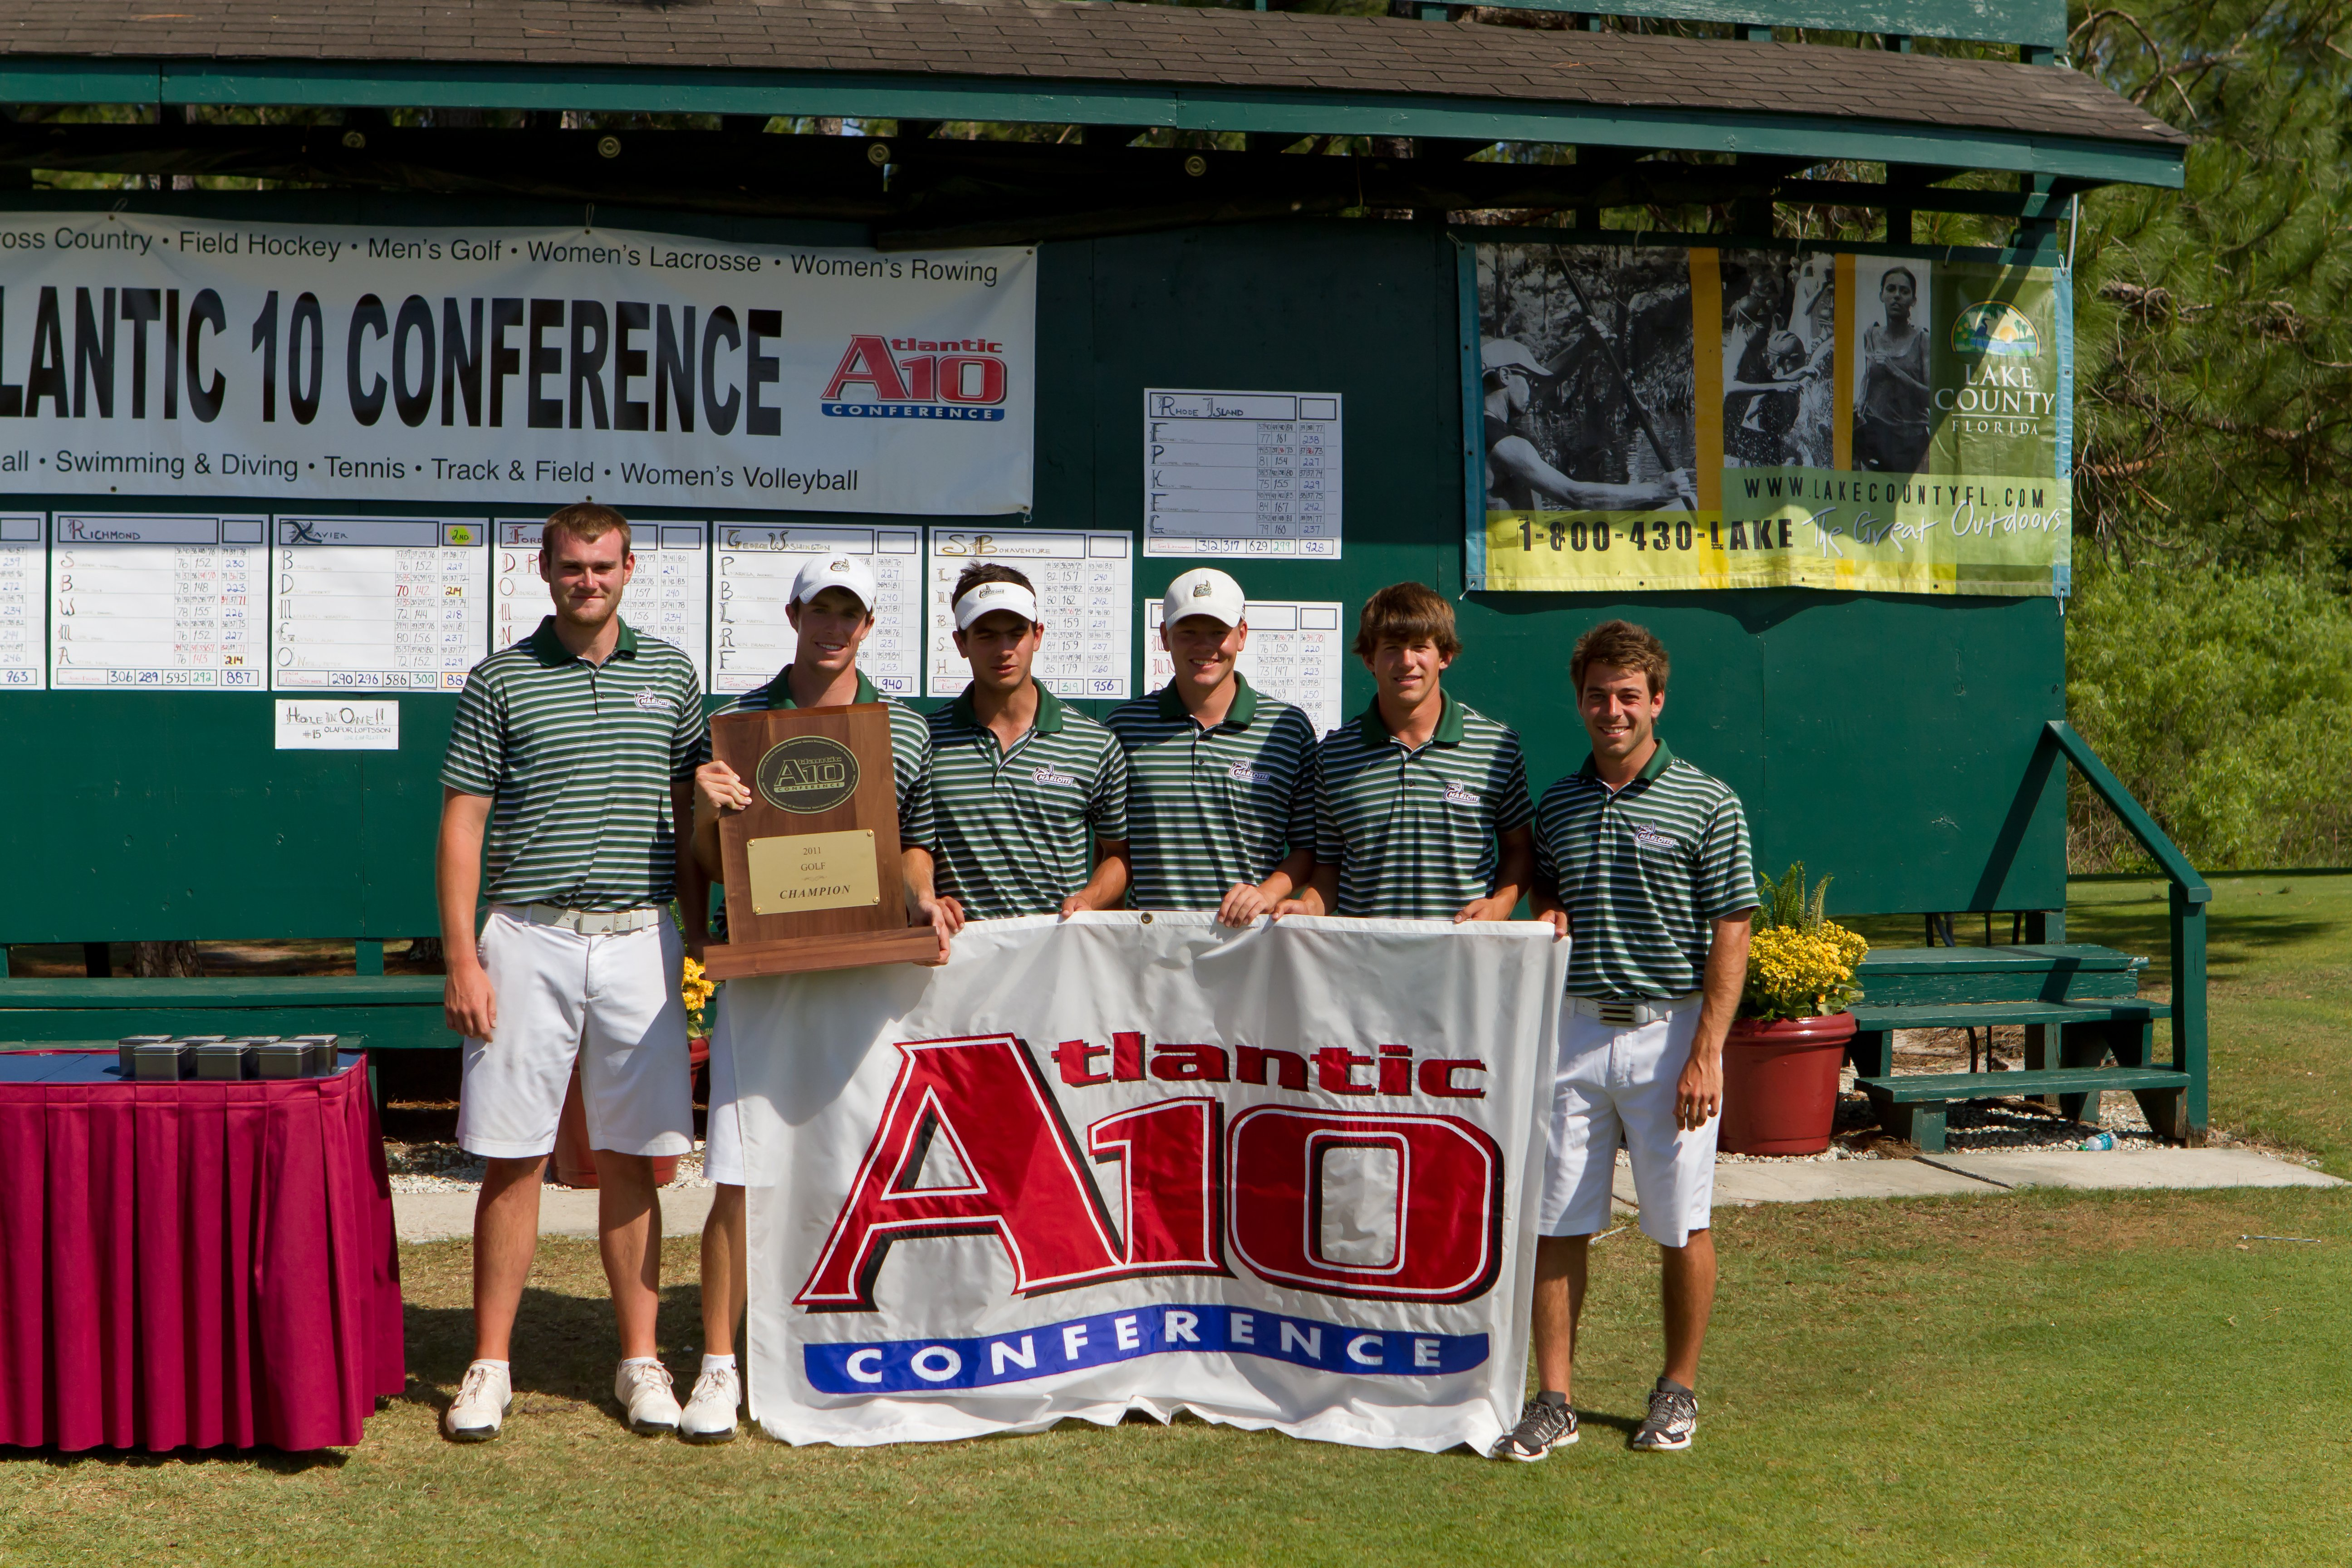 Charlotte won the Atlantic 10 Conference Championship.